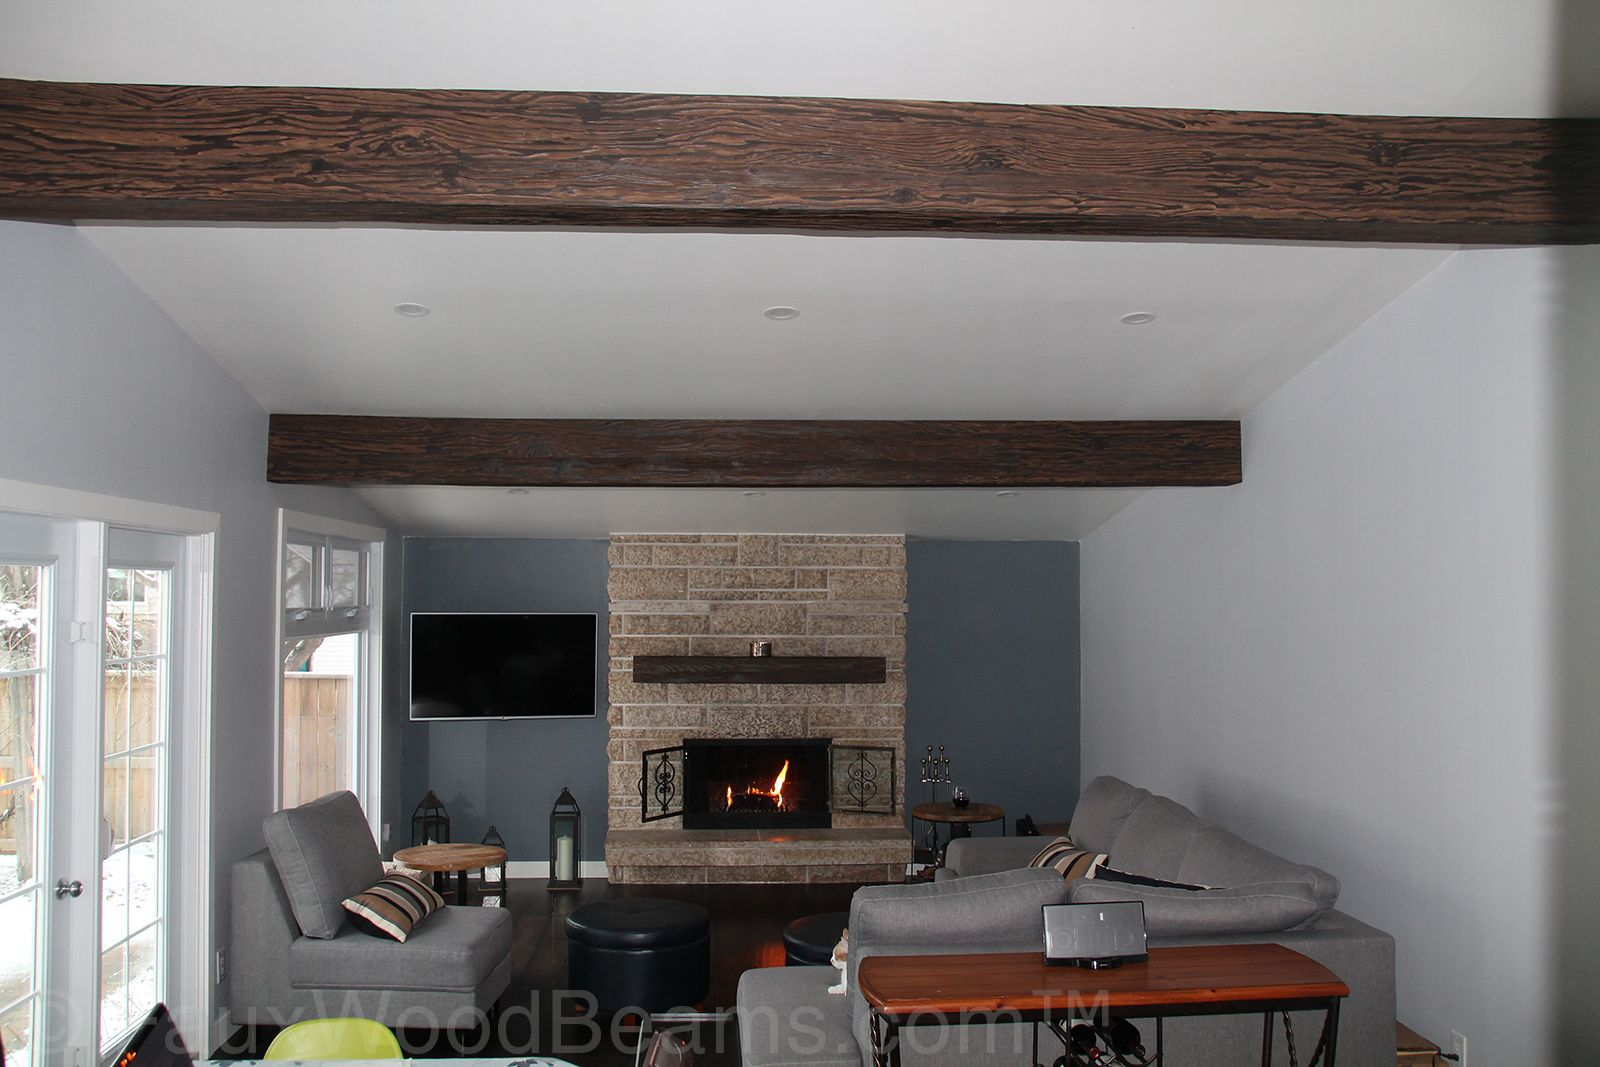 Match Your Mantel Beam With The Ceiling For The Complete